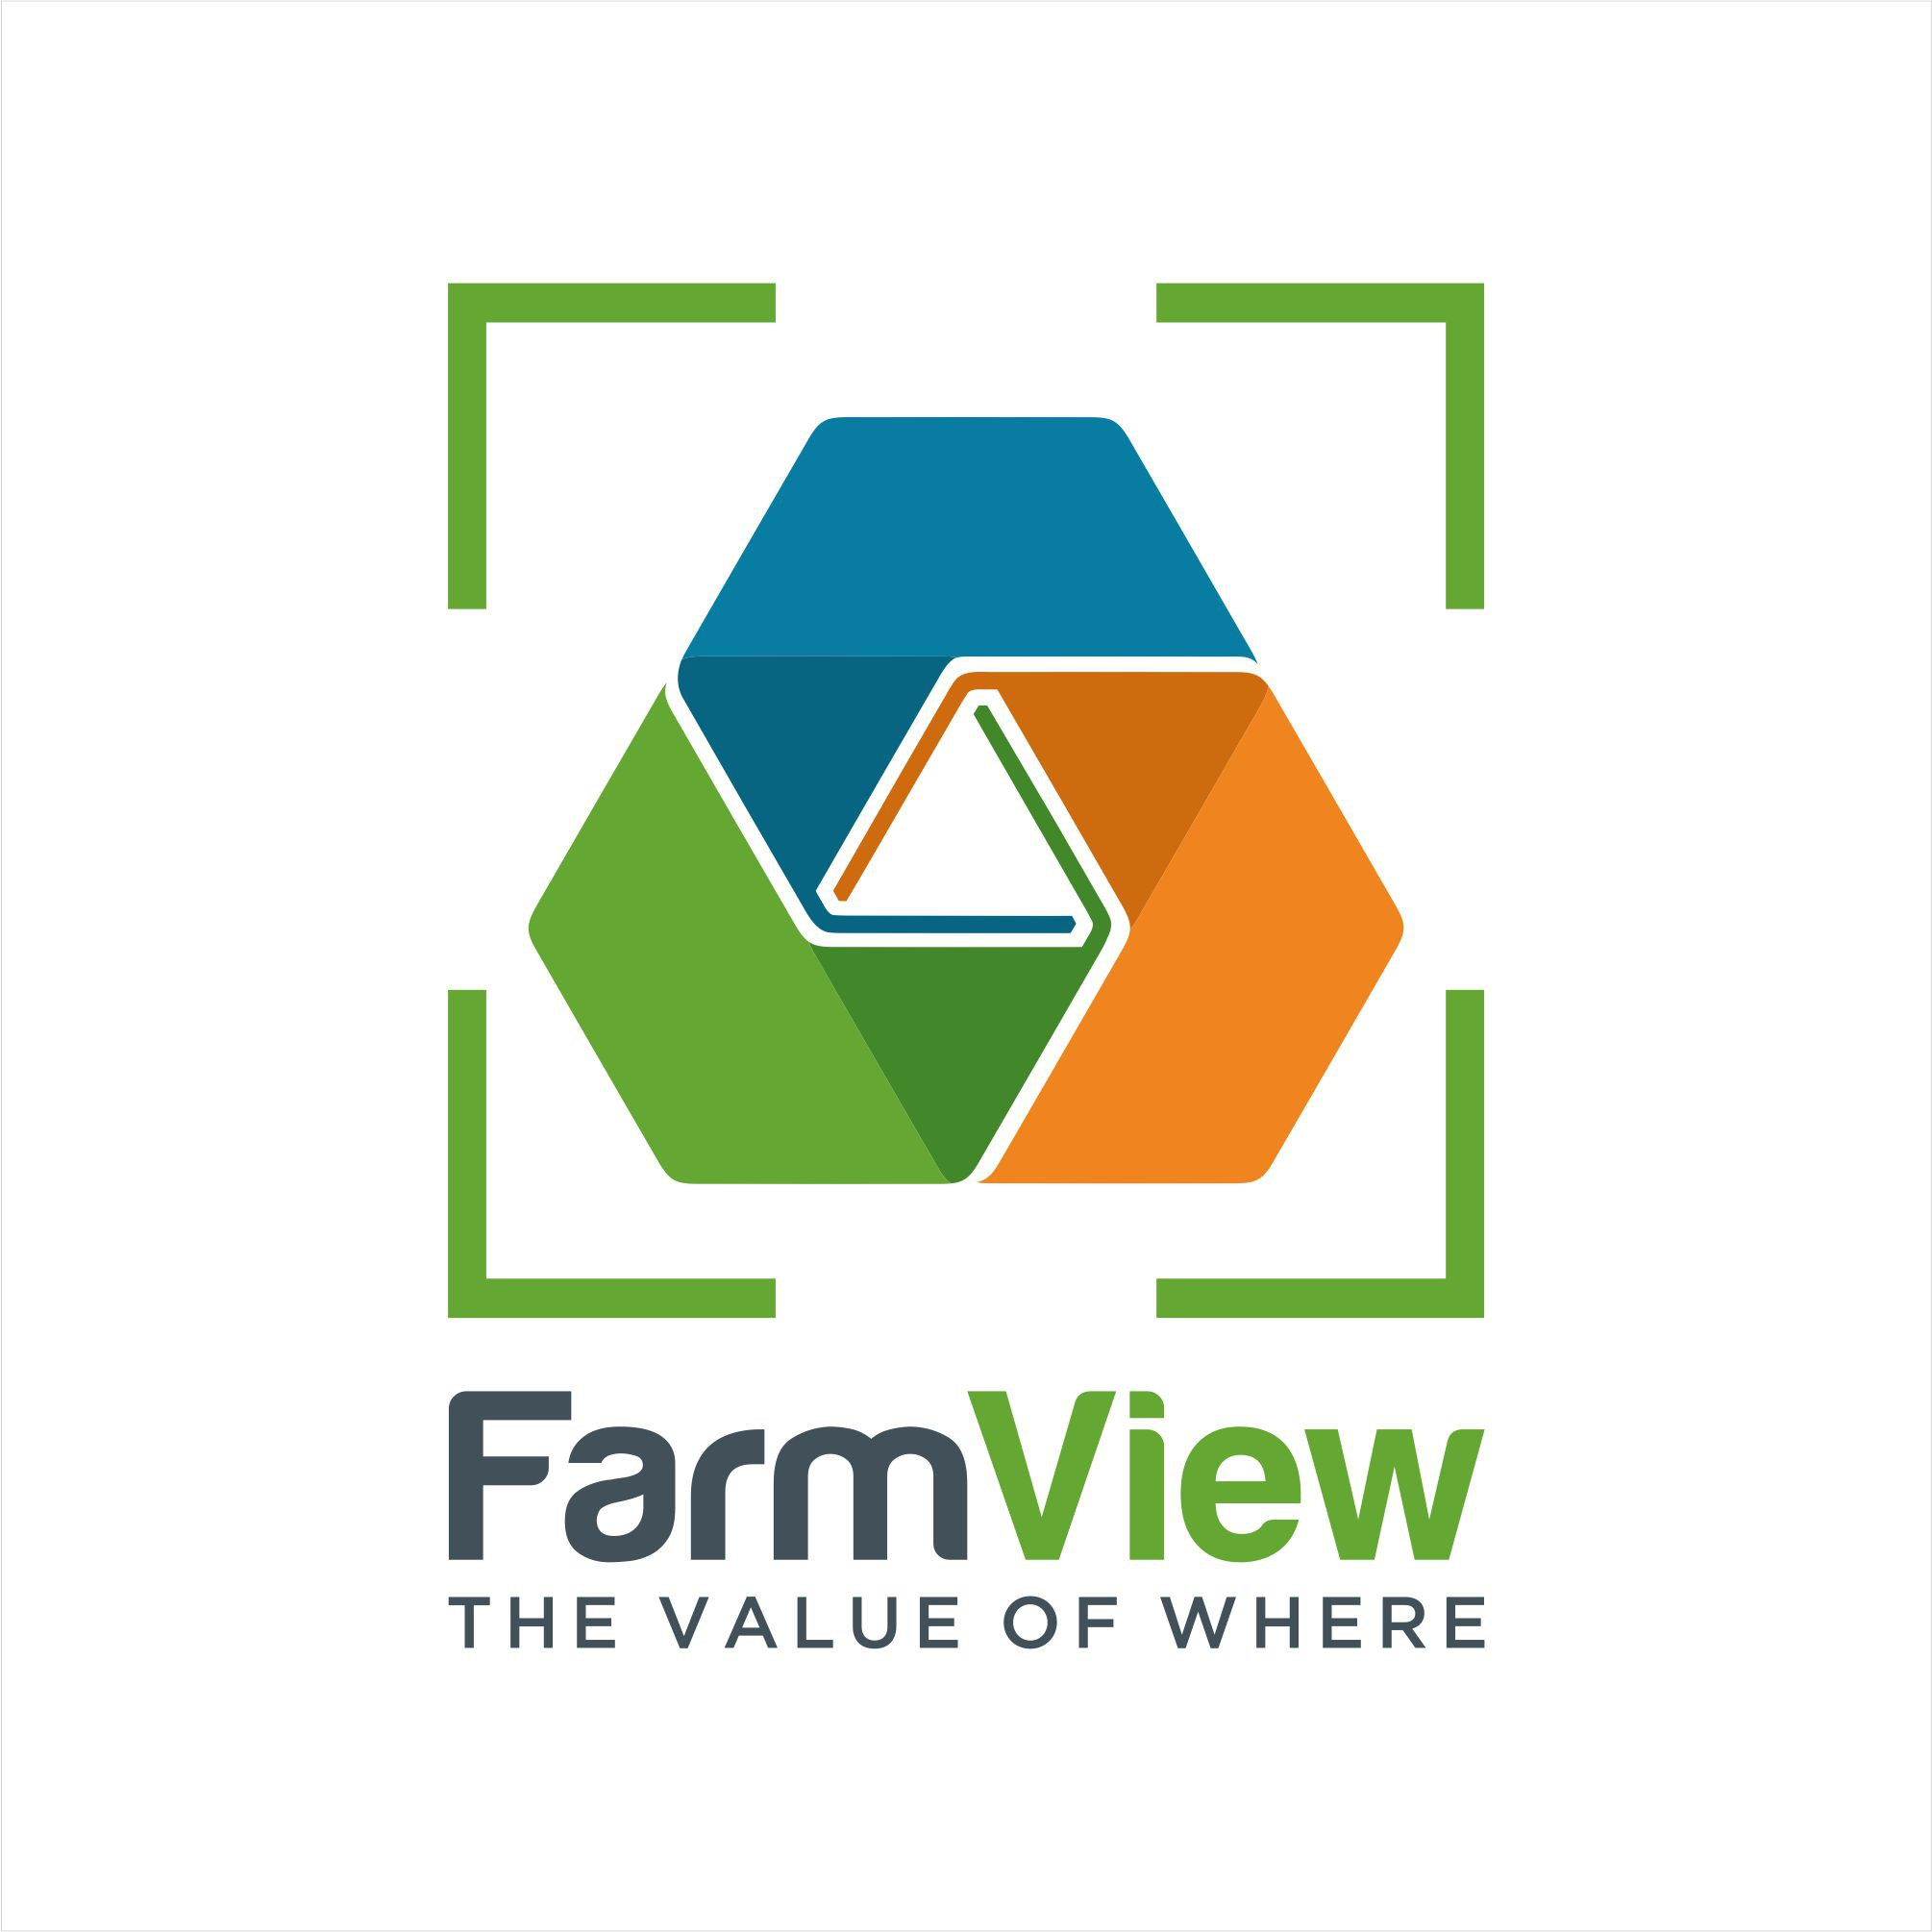 Fresh logo needed for AgriTech startup called FarmView